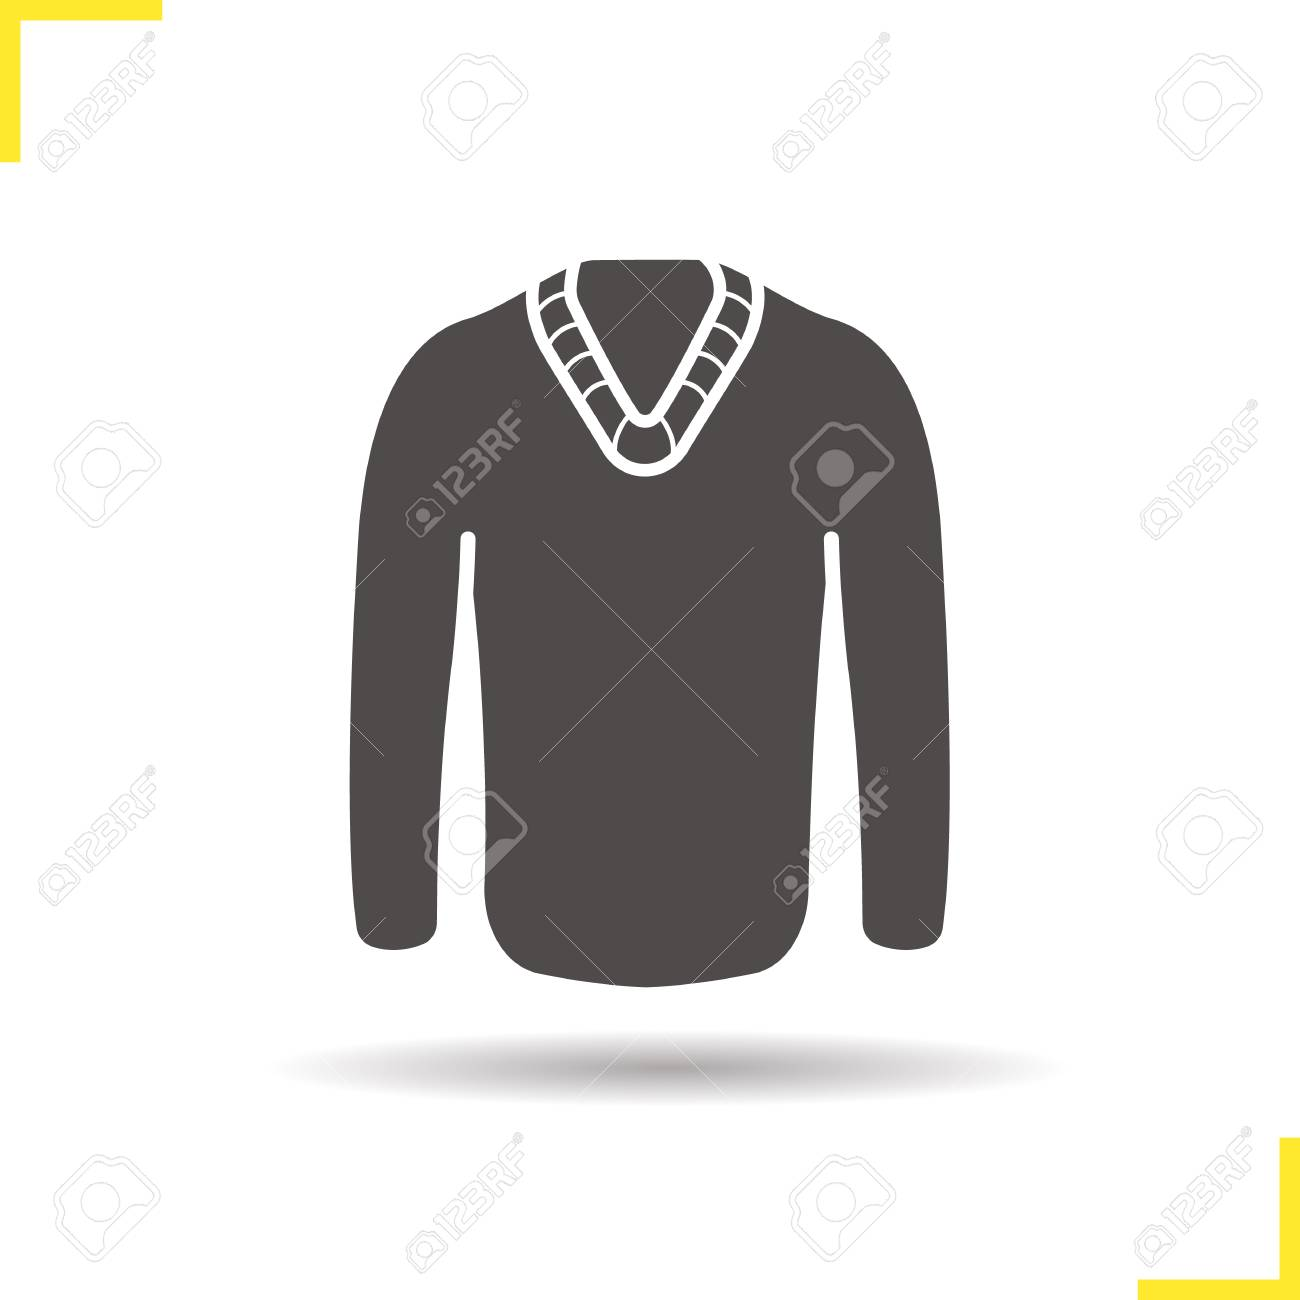 new product bfa90 d3741 Pullover icon. Drop shadow sweater silhouette symbol. Men's seasonal..